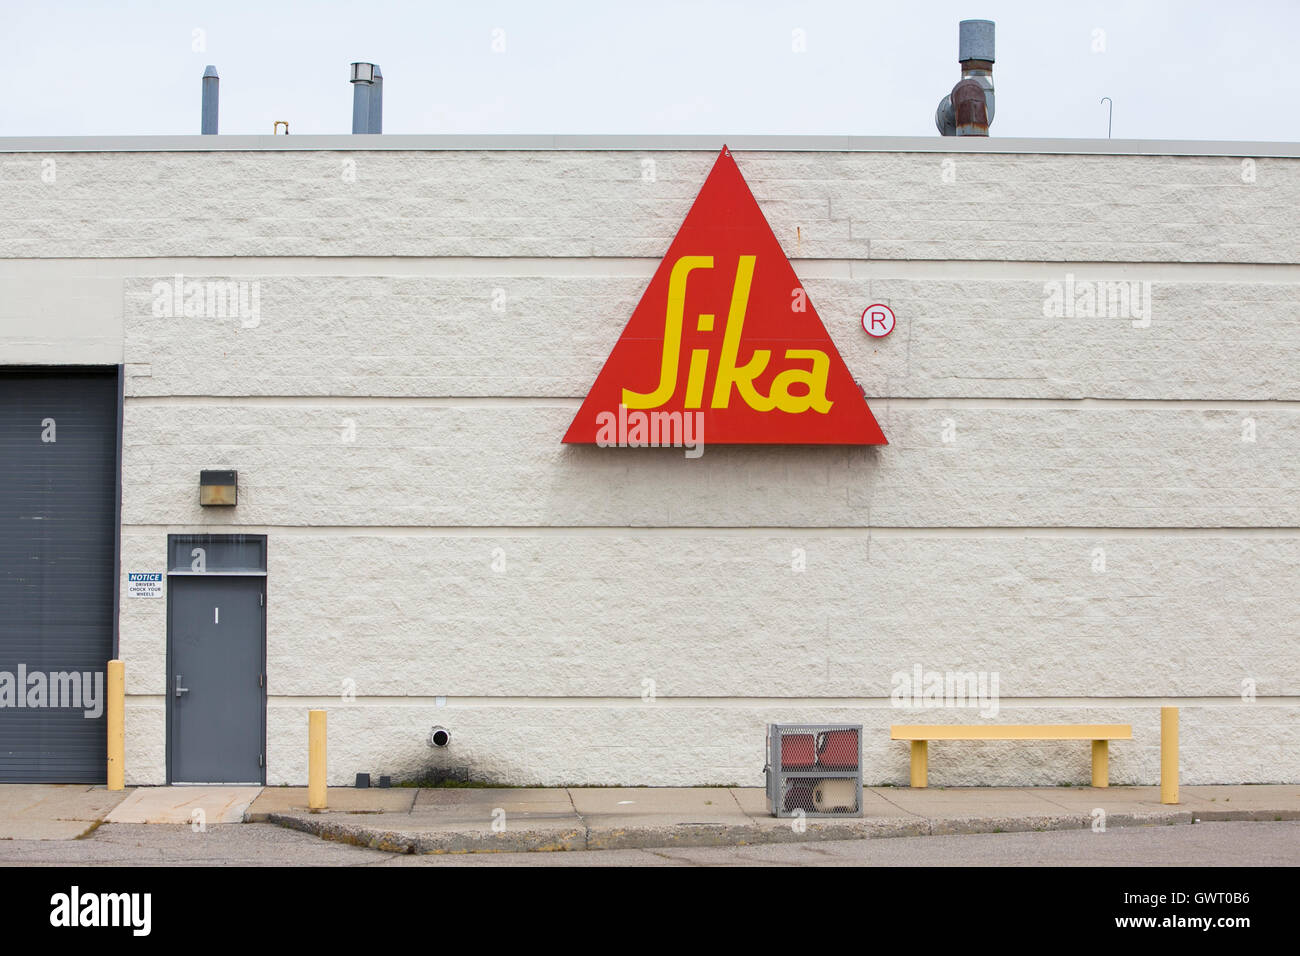 A logo sign outside of a facility occupied by the Sika